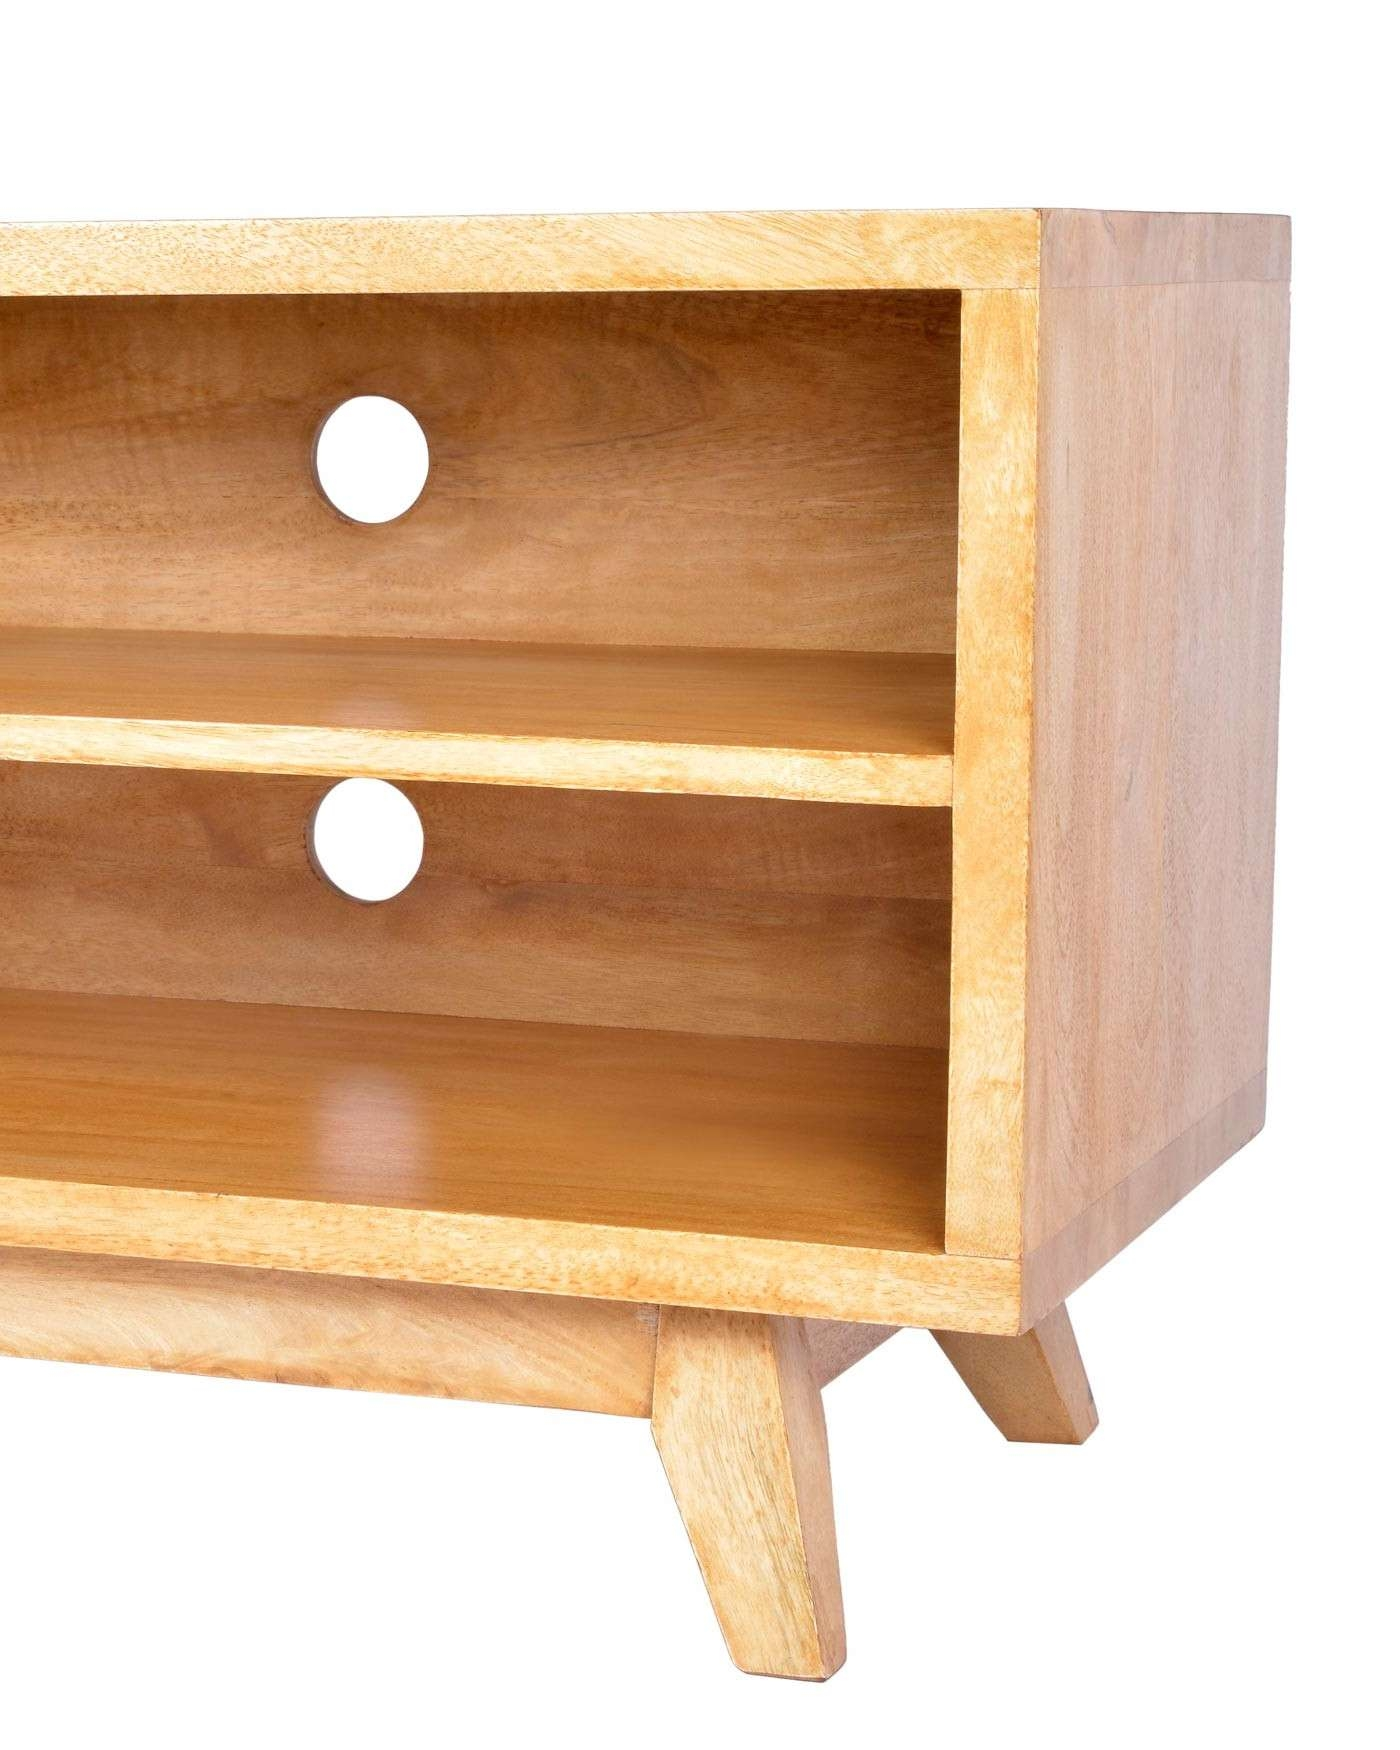 Retro Wooden Tv Stand With Shelf 100% Solid Mango Wood Oak Shade With Wooden Tv Stands (View 11 of 15)